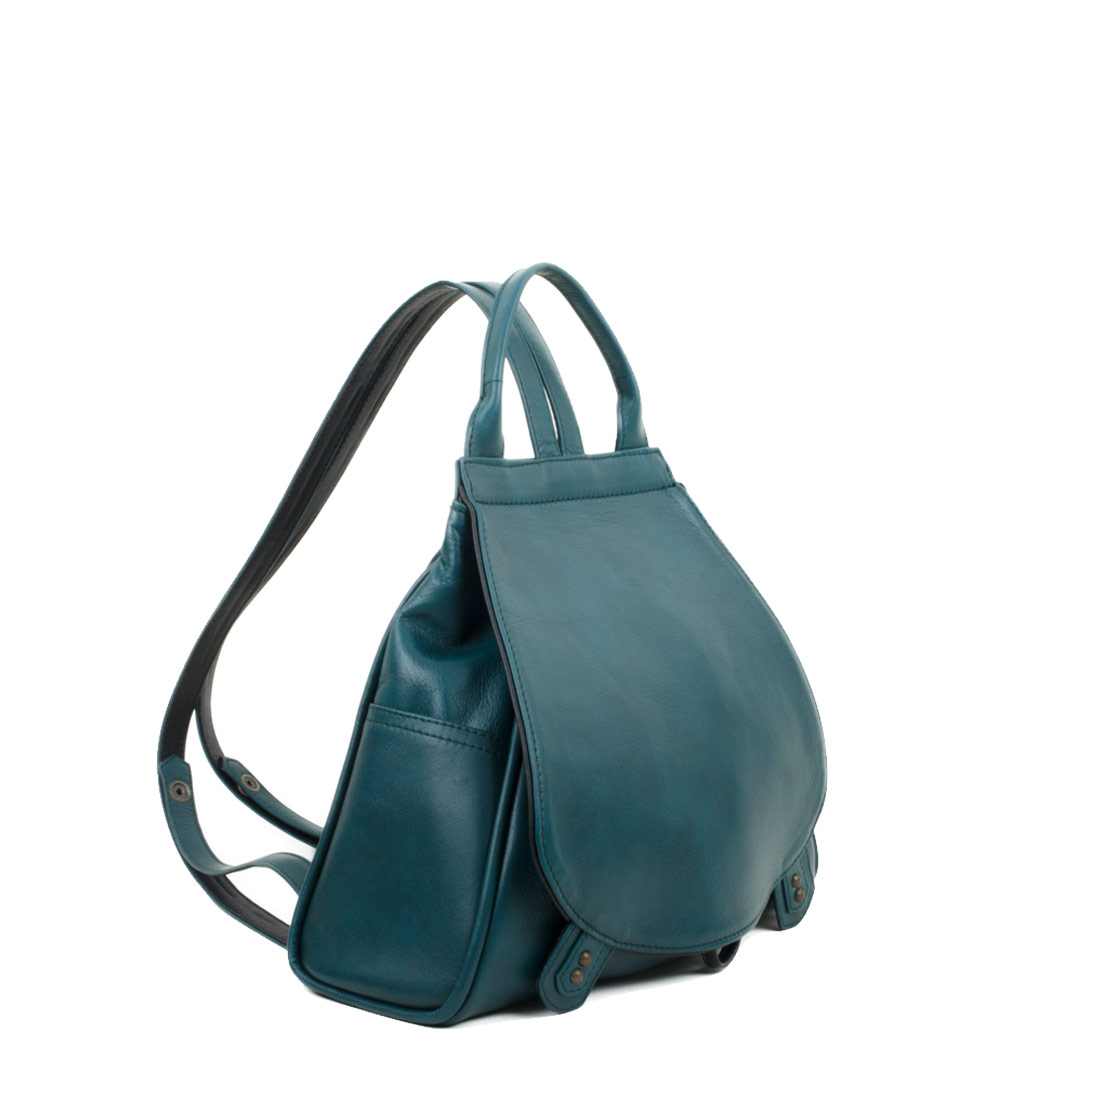 Daliya Teal Leather Backpack